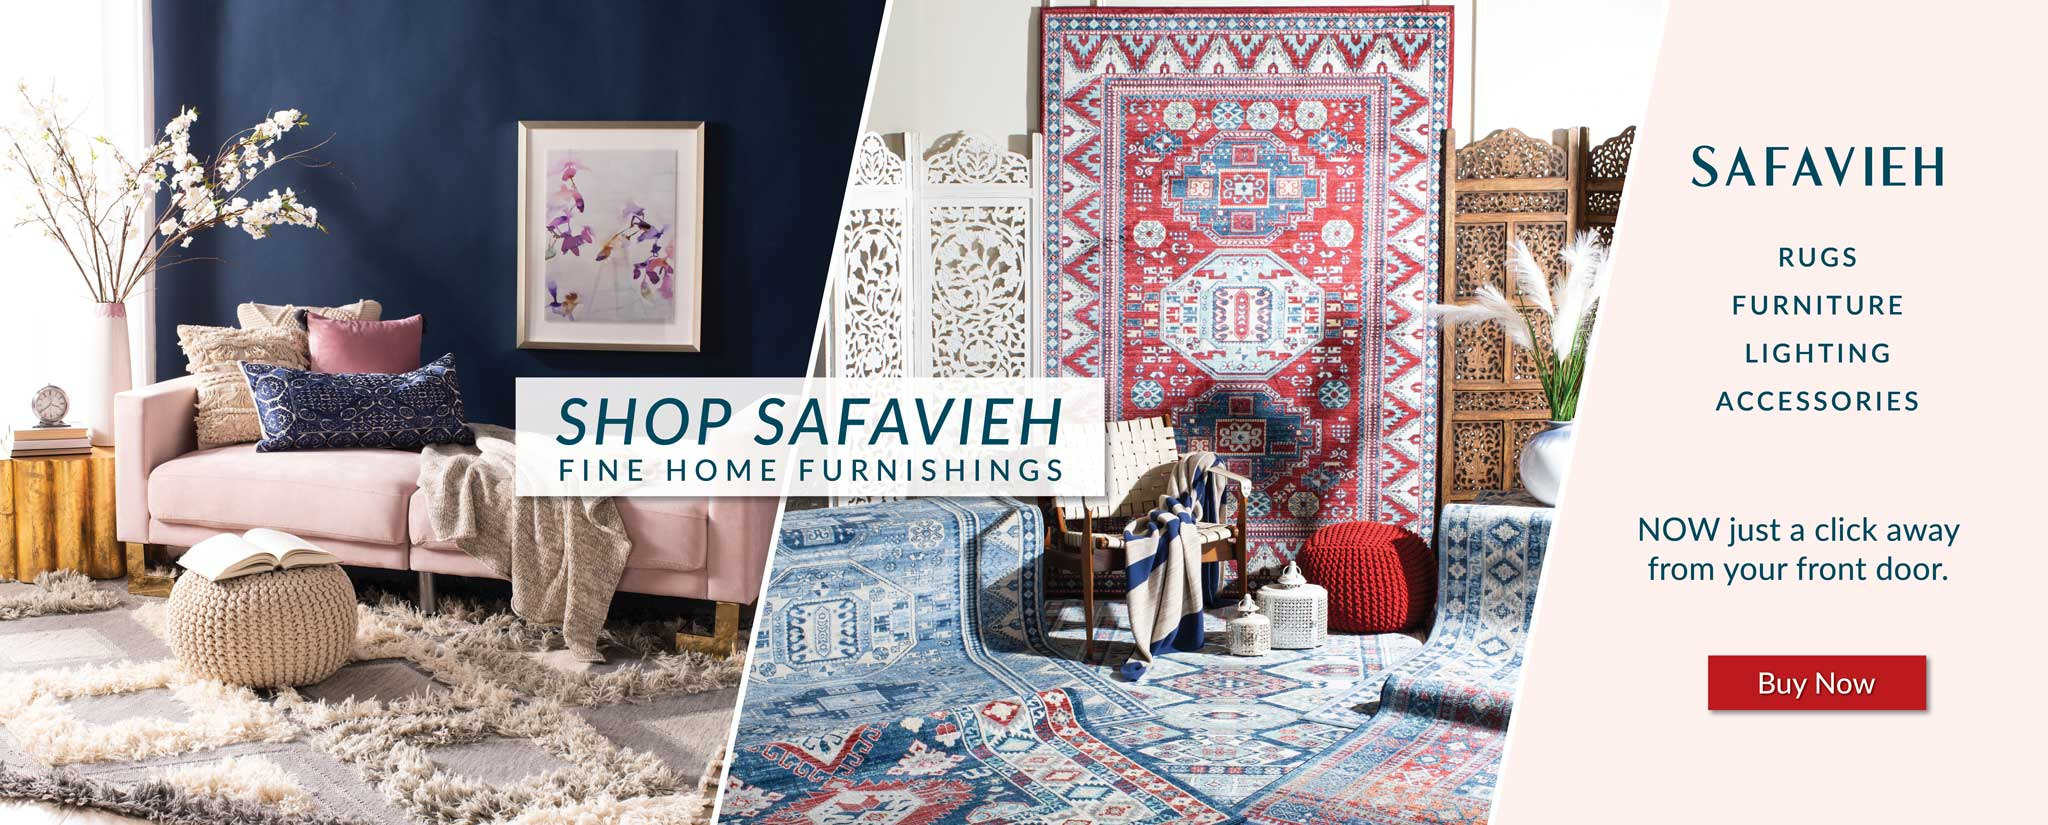 Home Furnishings Toronto Rugs Home Furnishings Safavieh